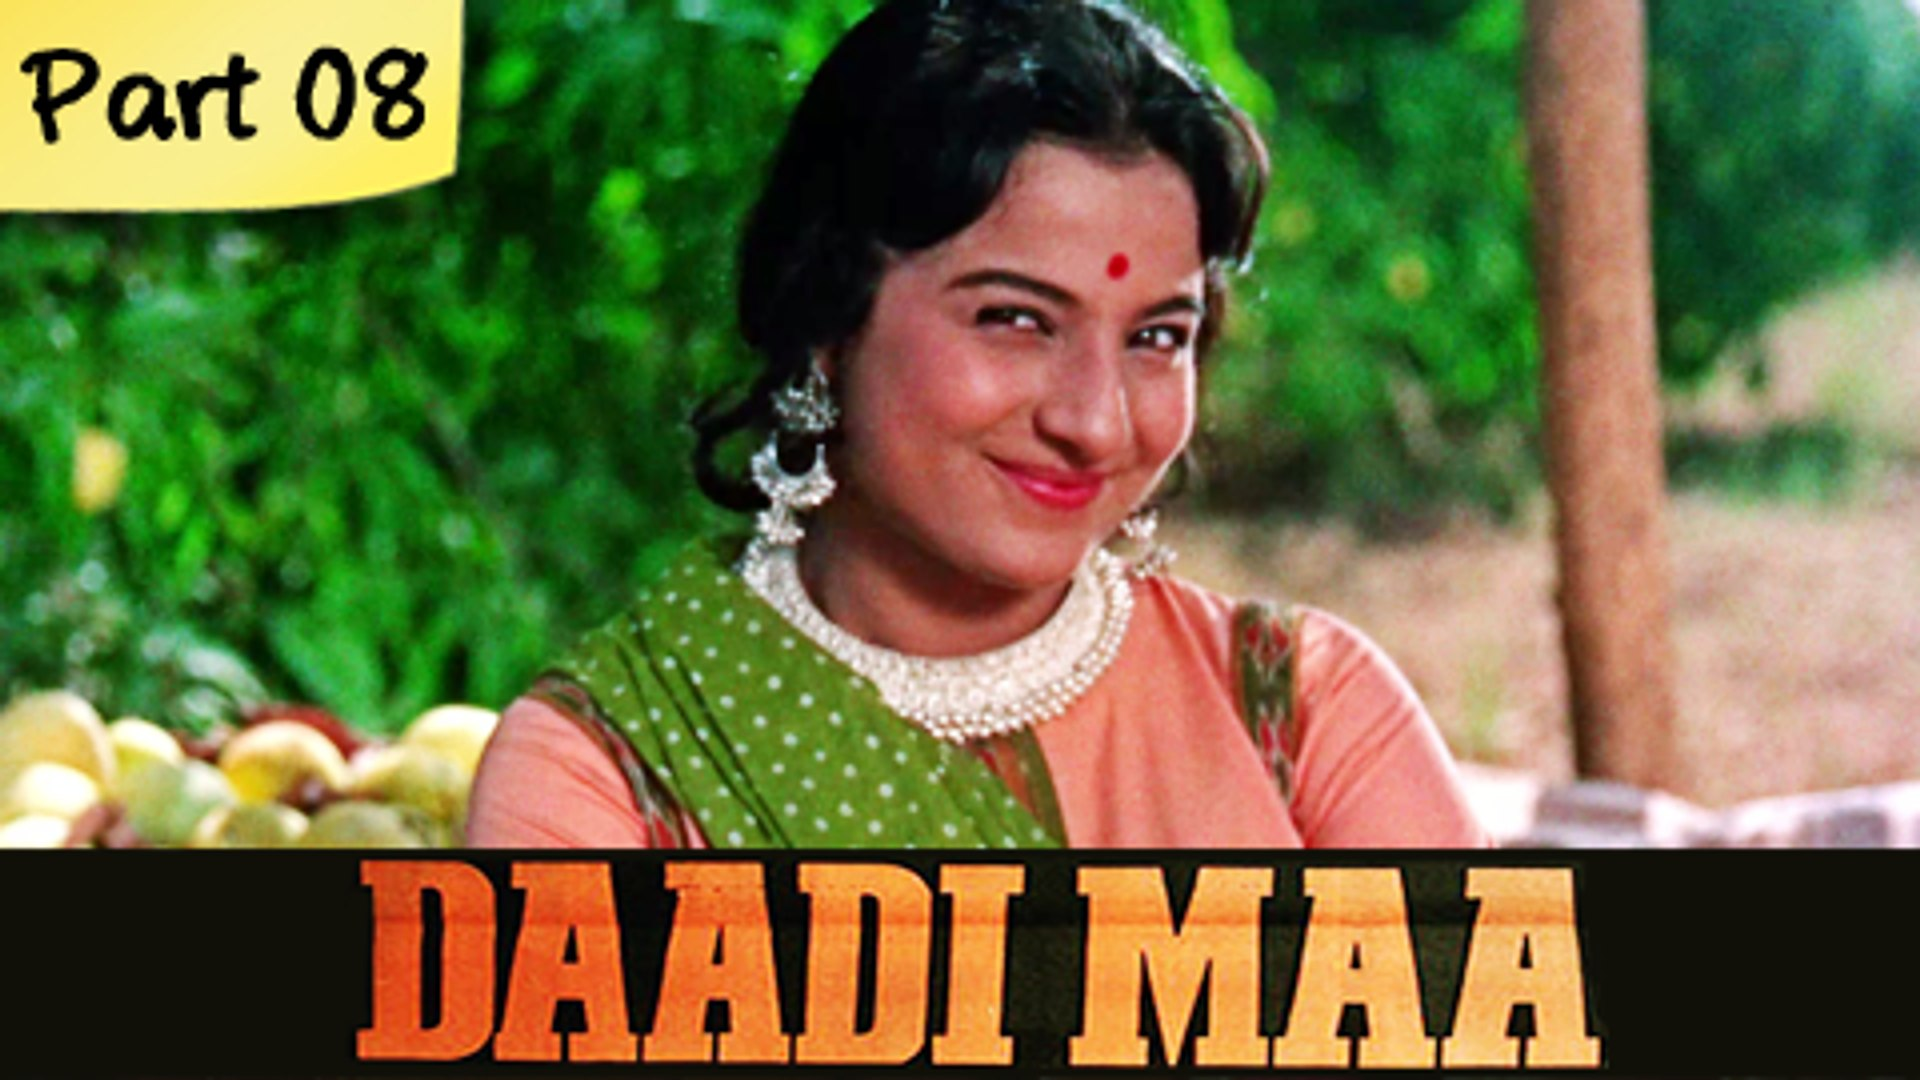 Daadi Maa - Part 08/14 - Super Hit Classic Bollywood Family Movie - Ashok Kumar, Mumtaz, Mehmood